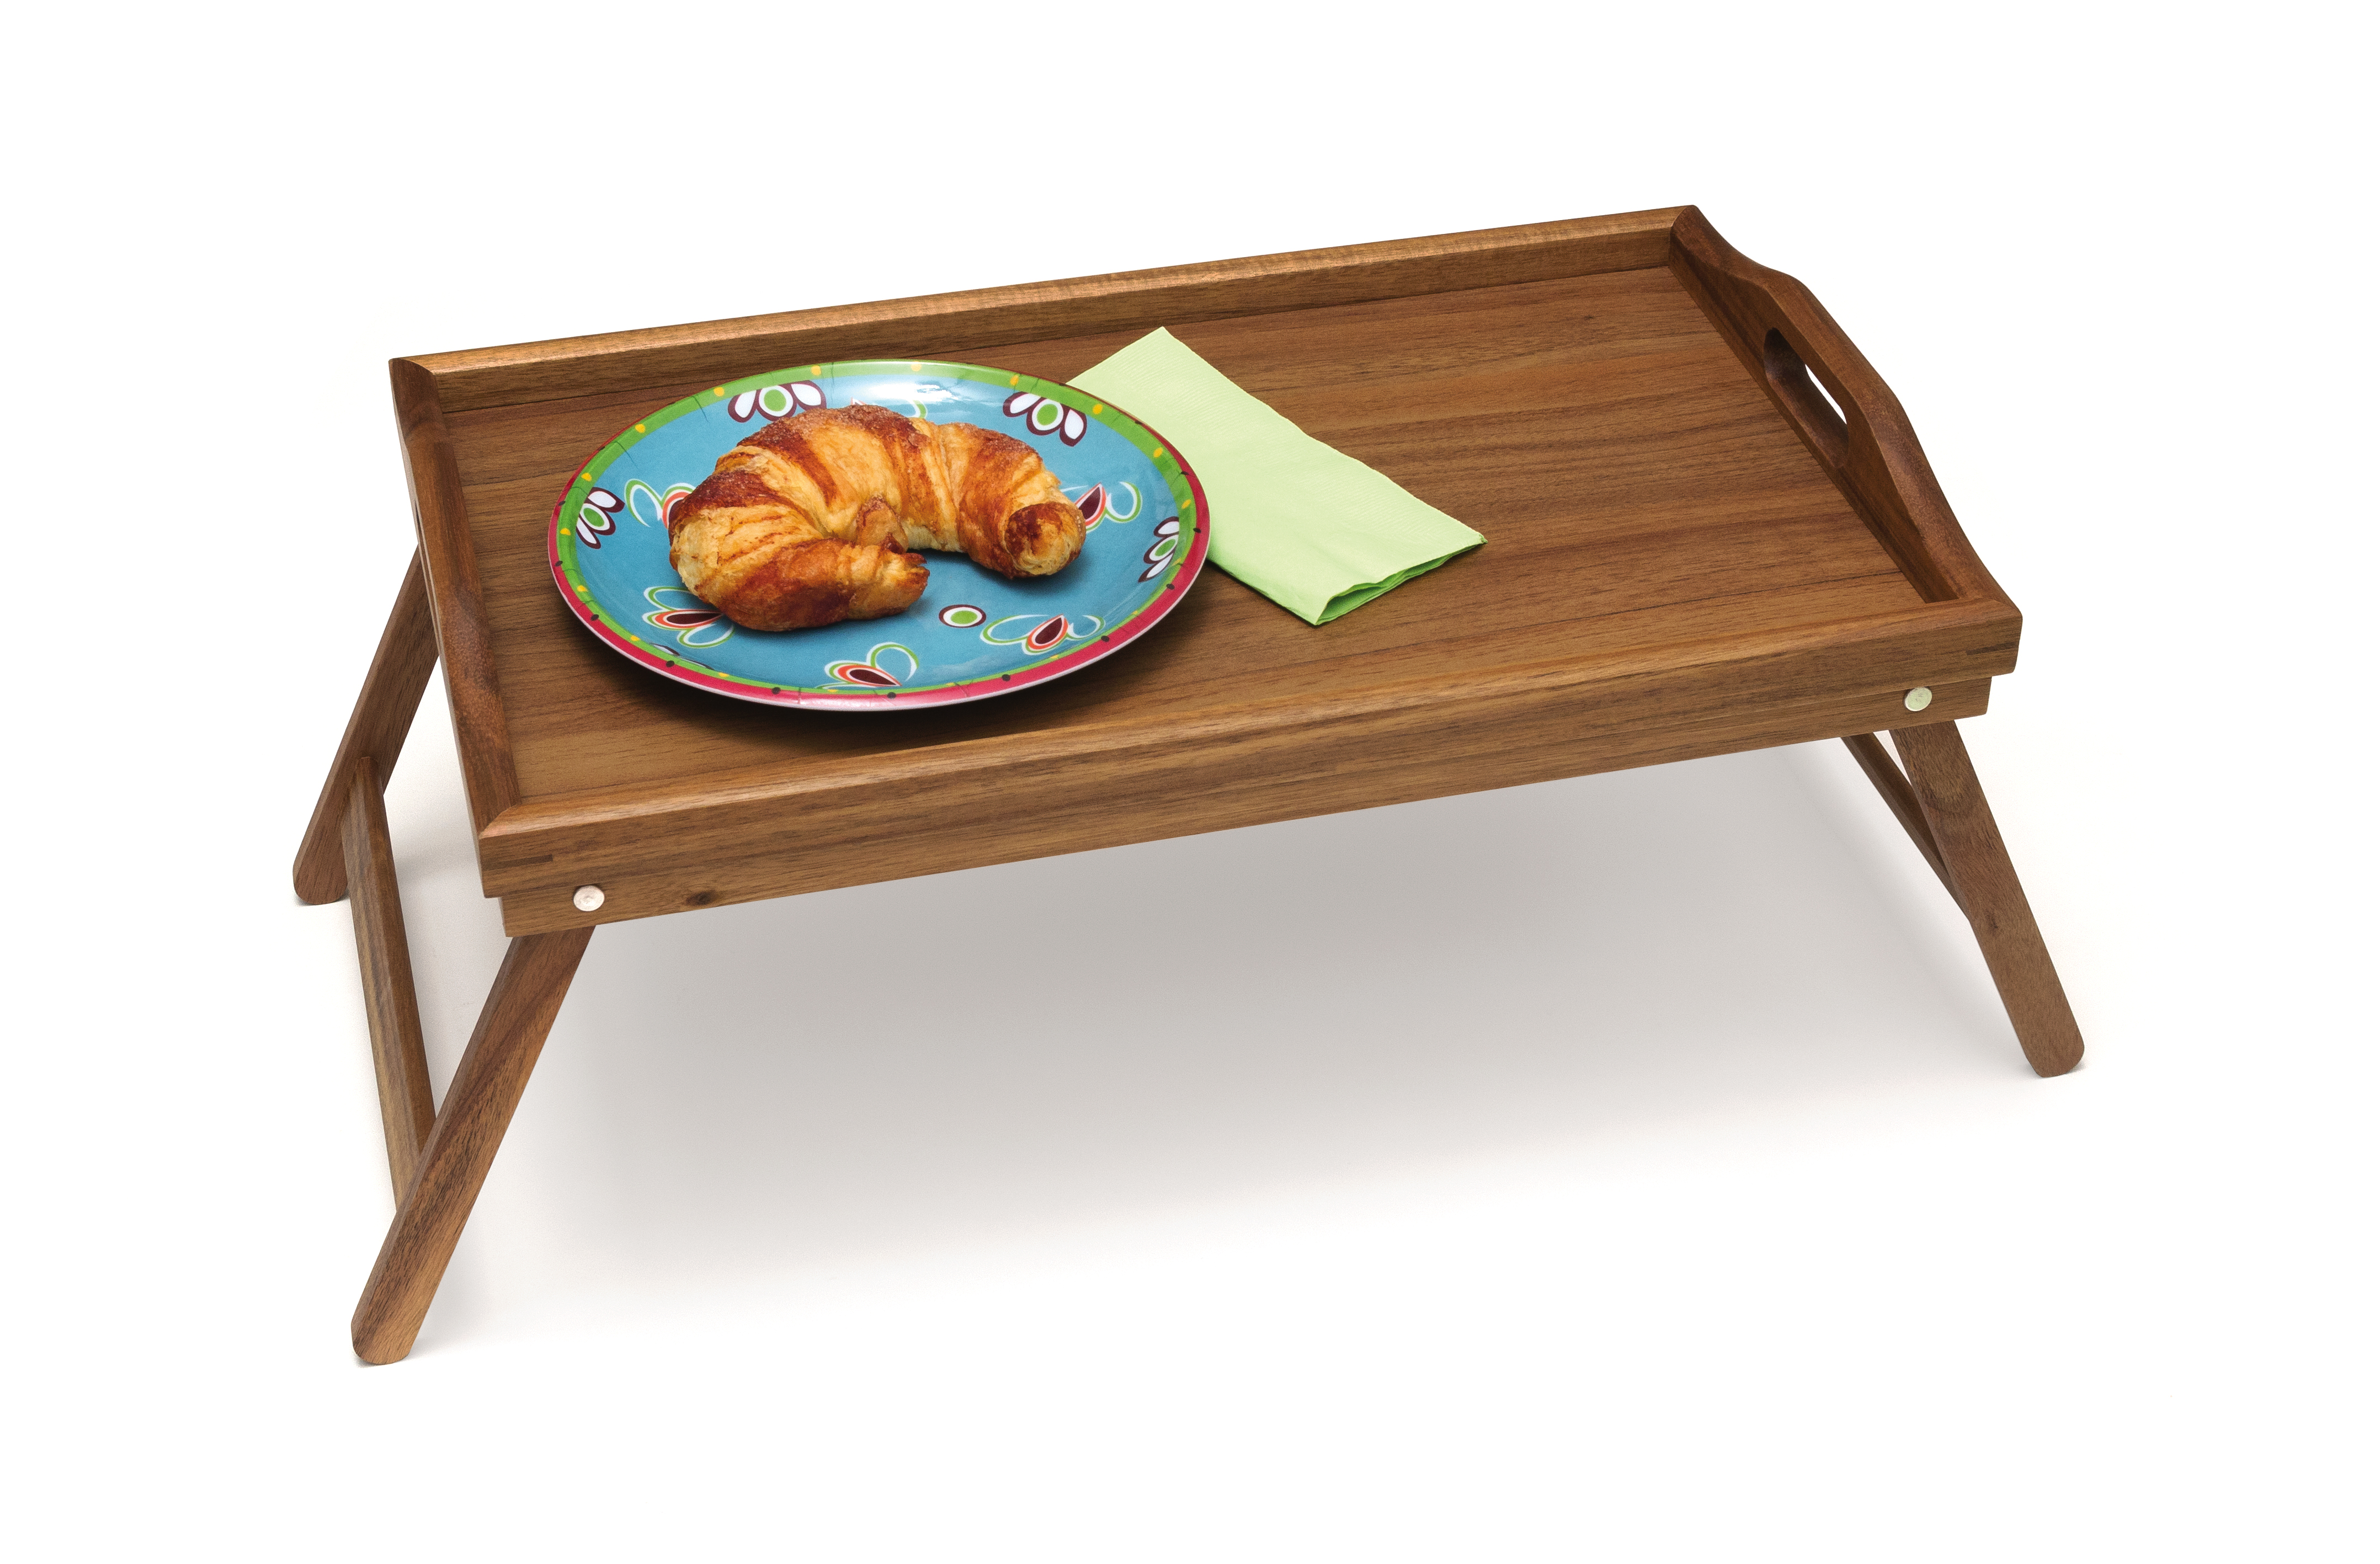 Beau Acacia Bed Tray With Folding Legs